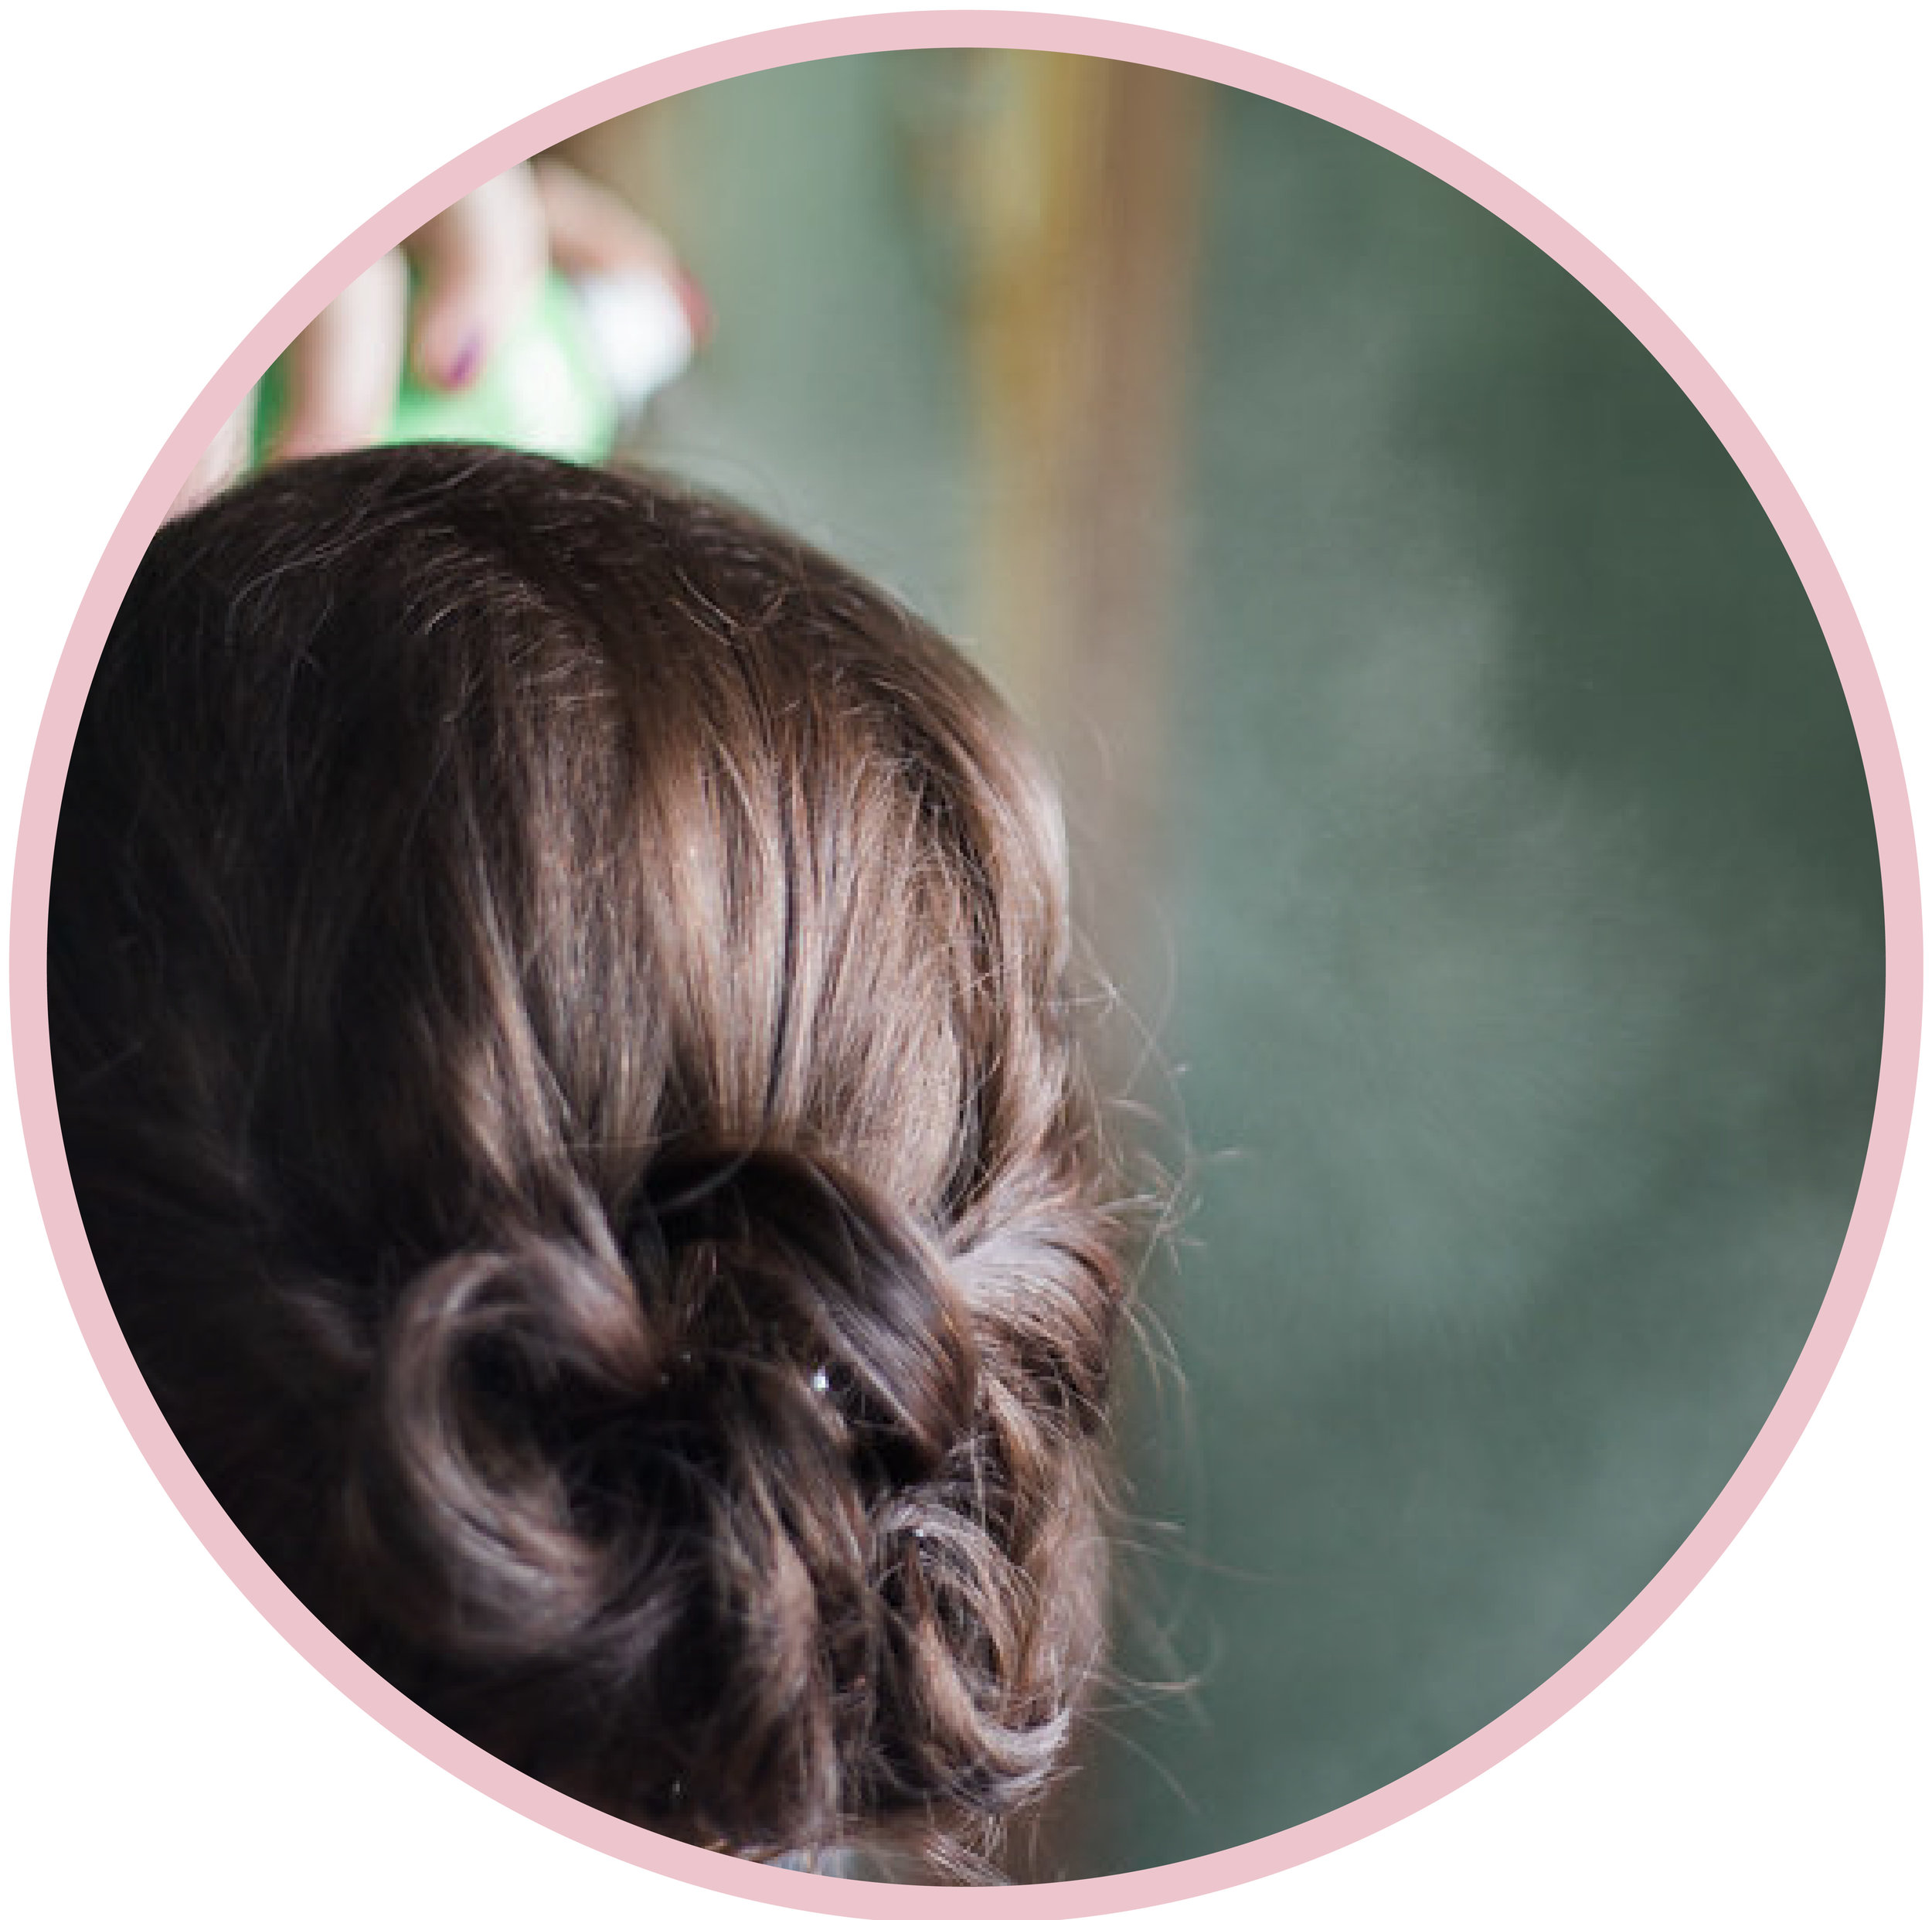 haley snodderly - wedding makeup and hair styles - tulsa oklahoma